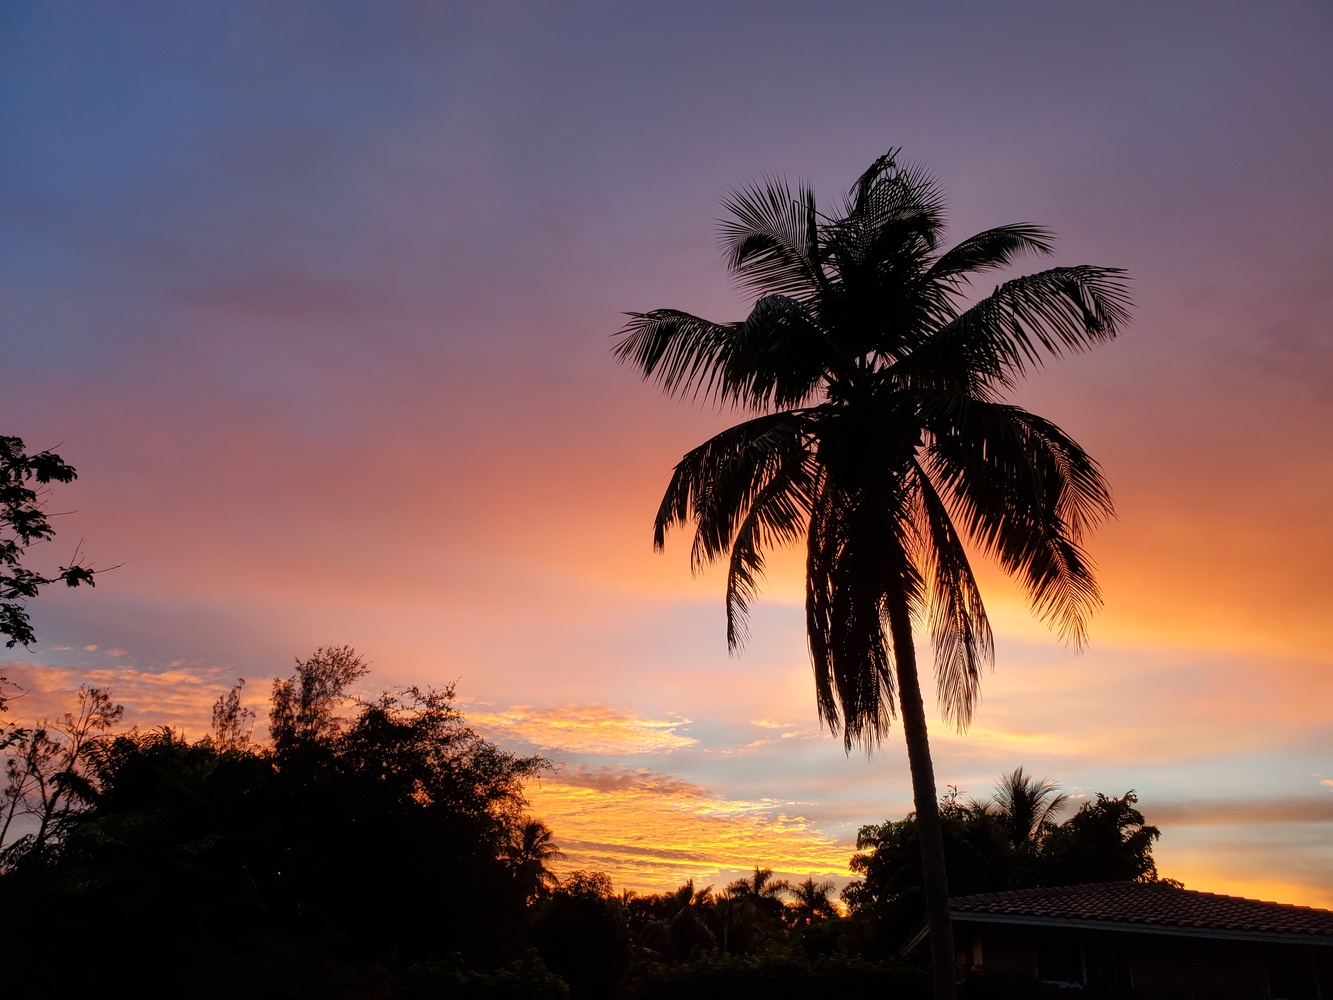 Tropical Sunser by Kathy DITTON